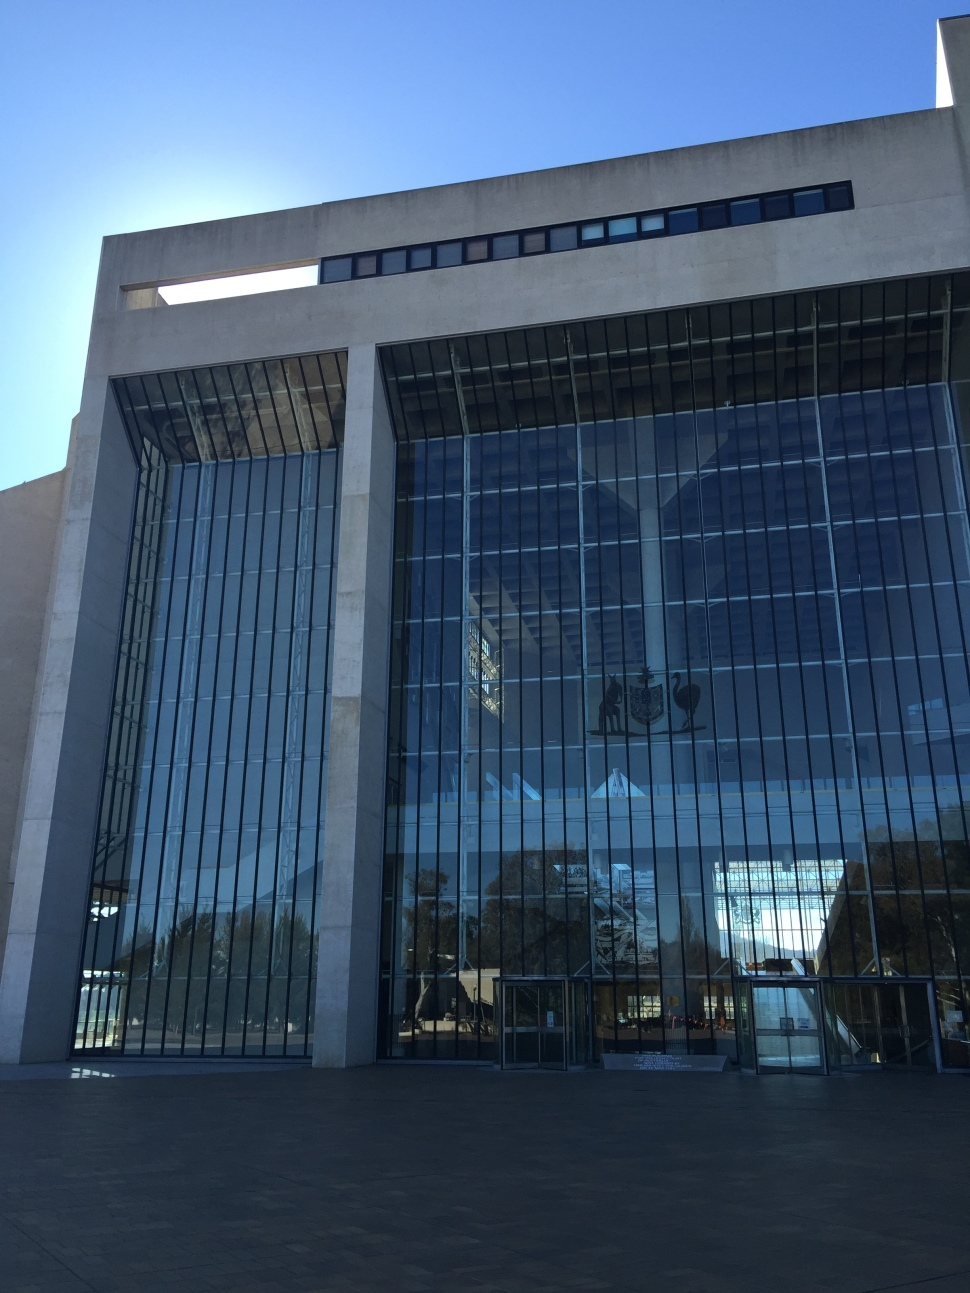 High Court of Australia in Canberra